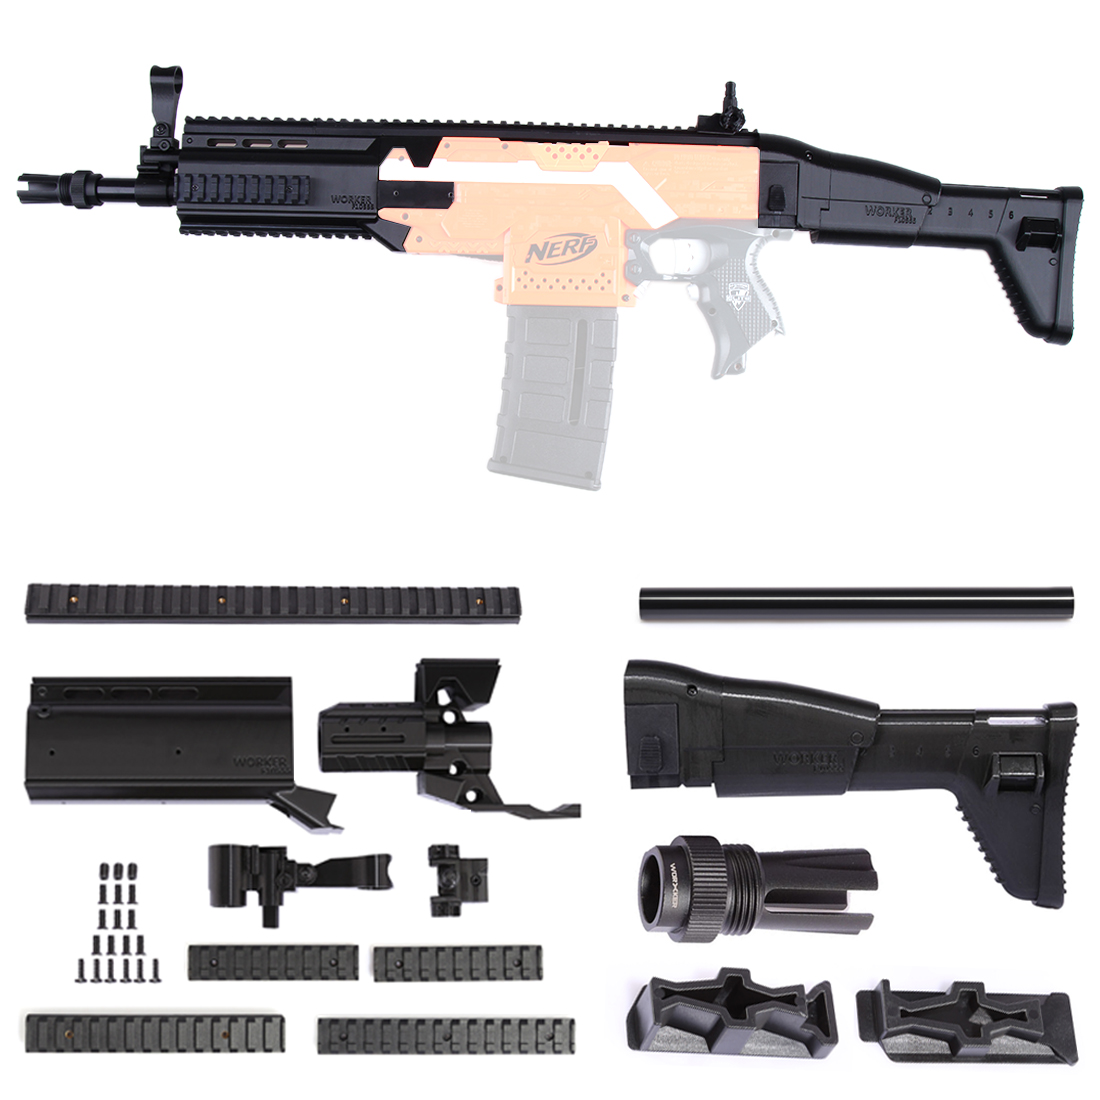 WORKER f10555 3D Printing Modularized NO.152 Front Tube + Tail Stock Kit for Nerf Stryfe садовая детская тяпка truper atj kid 10555